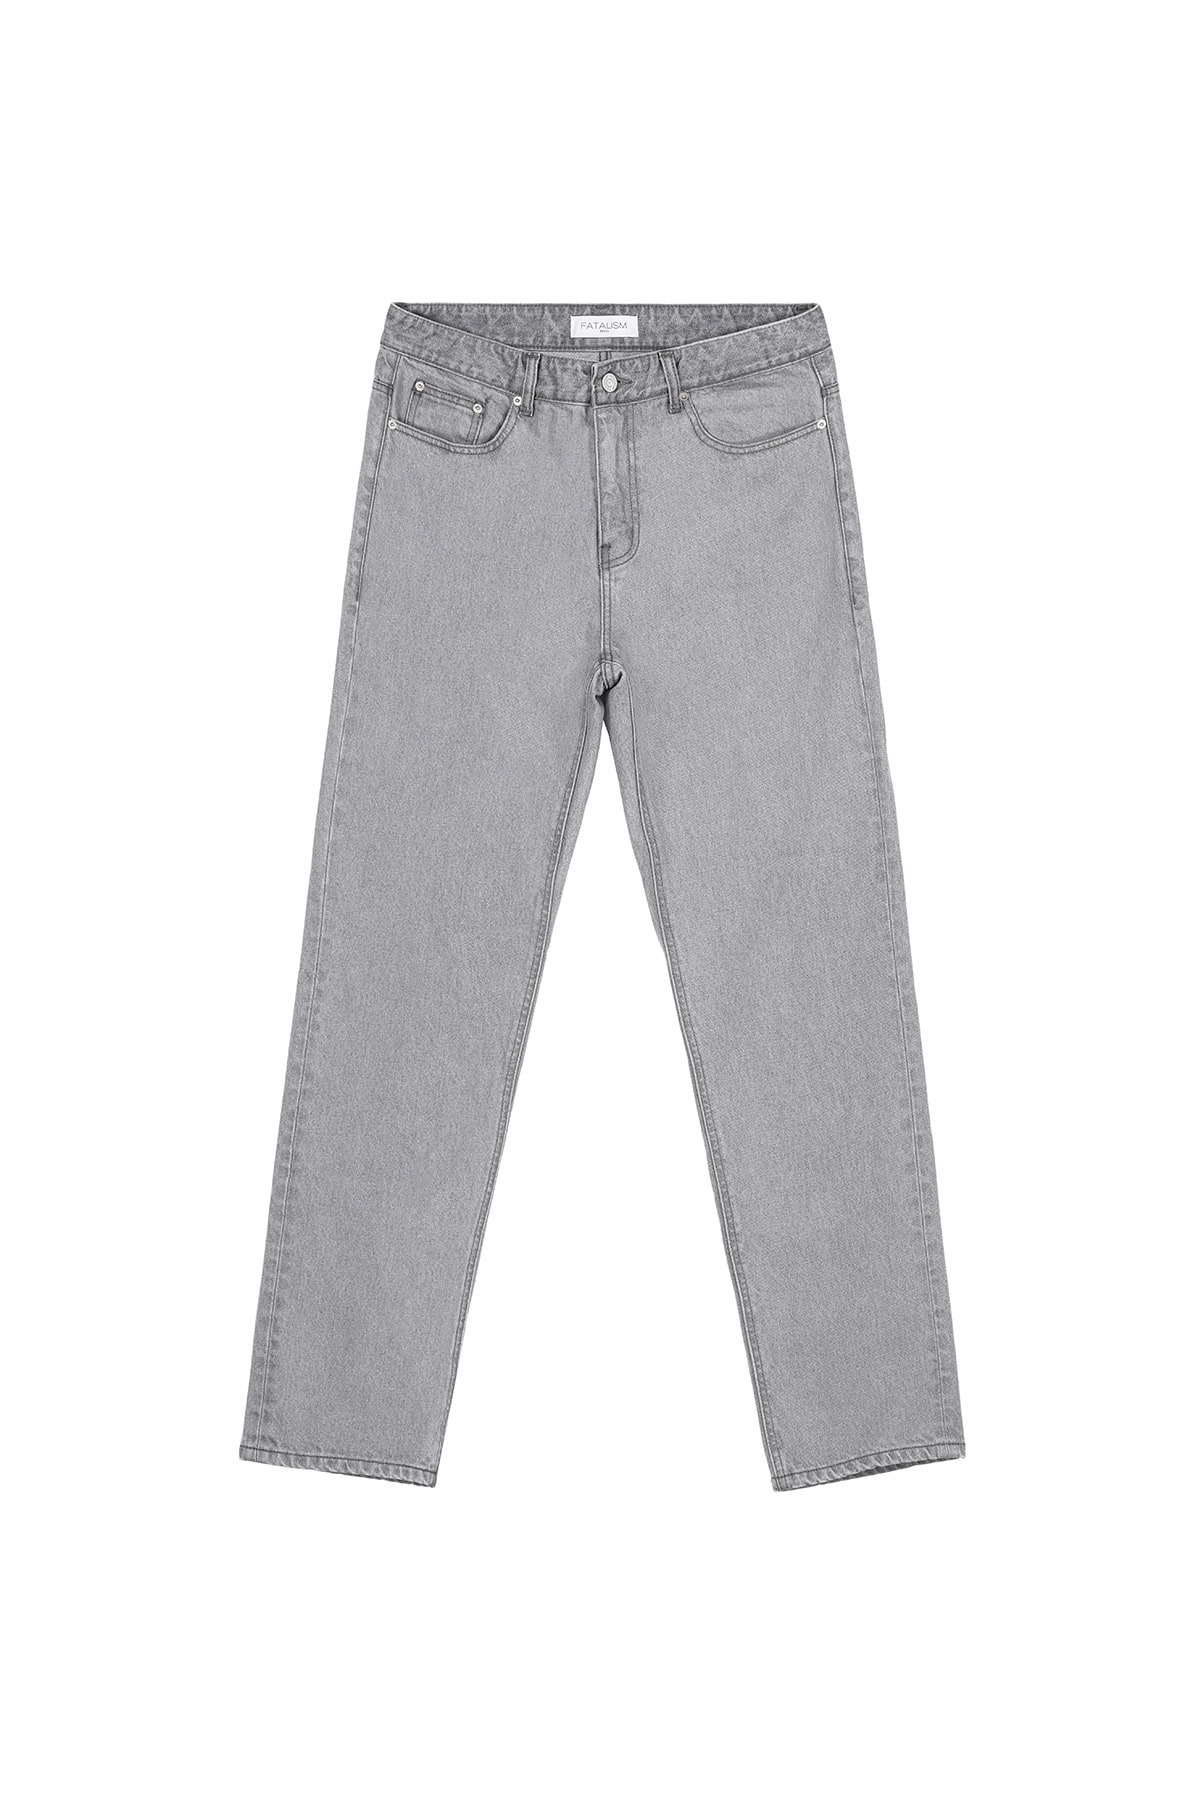 #0216 Monogrey straight fit